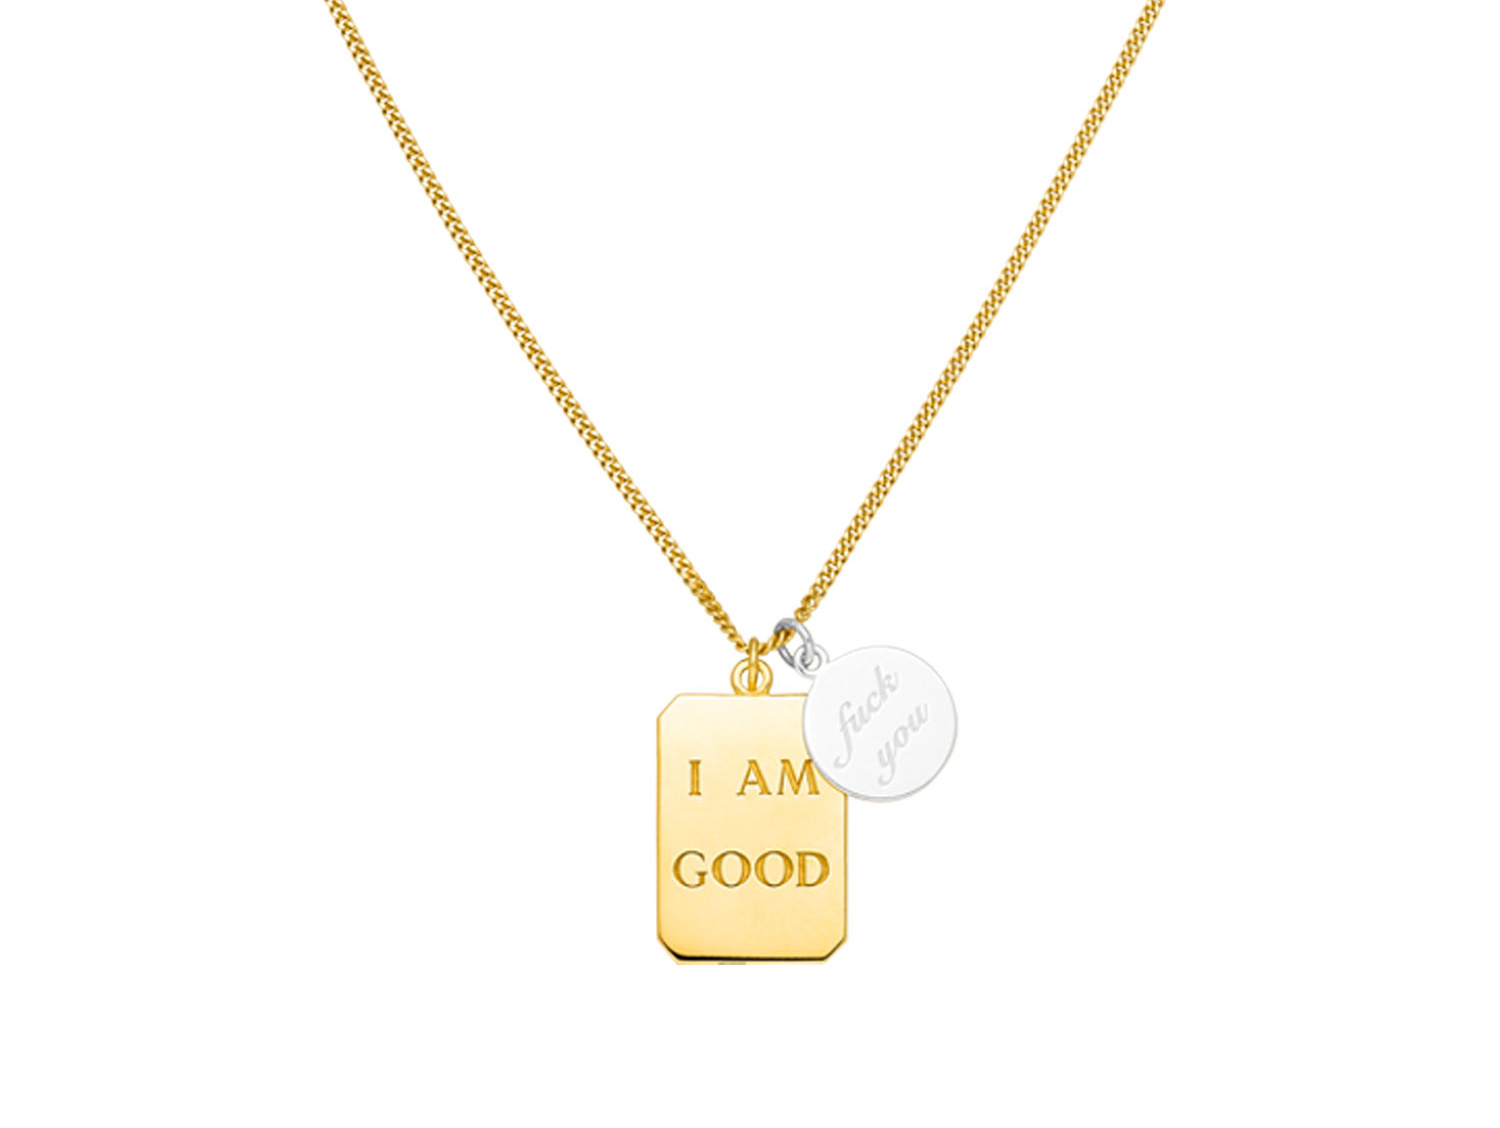 NinaKastens_I-AM-GOOD-fuck-you-Necklace-Gold_CROP_Web